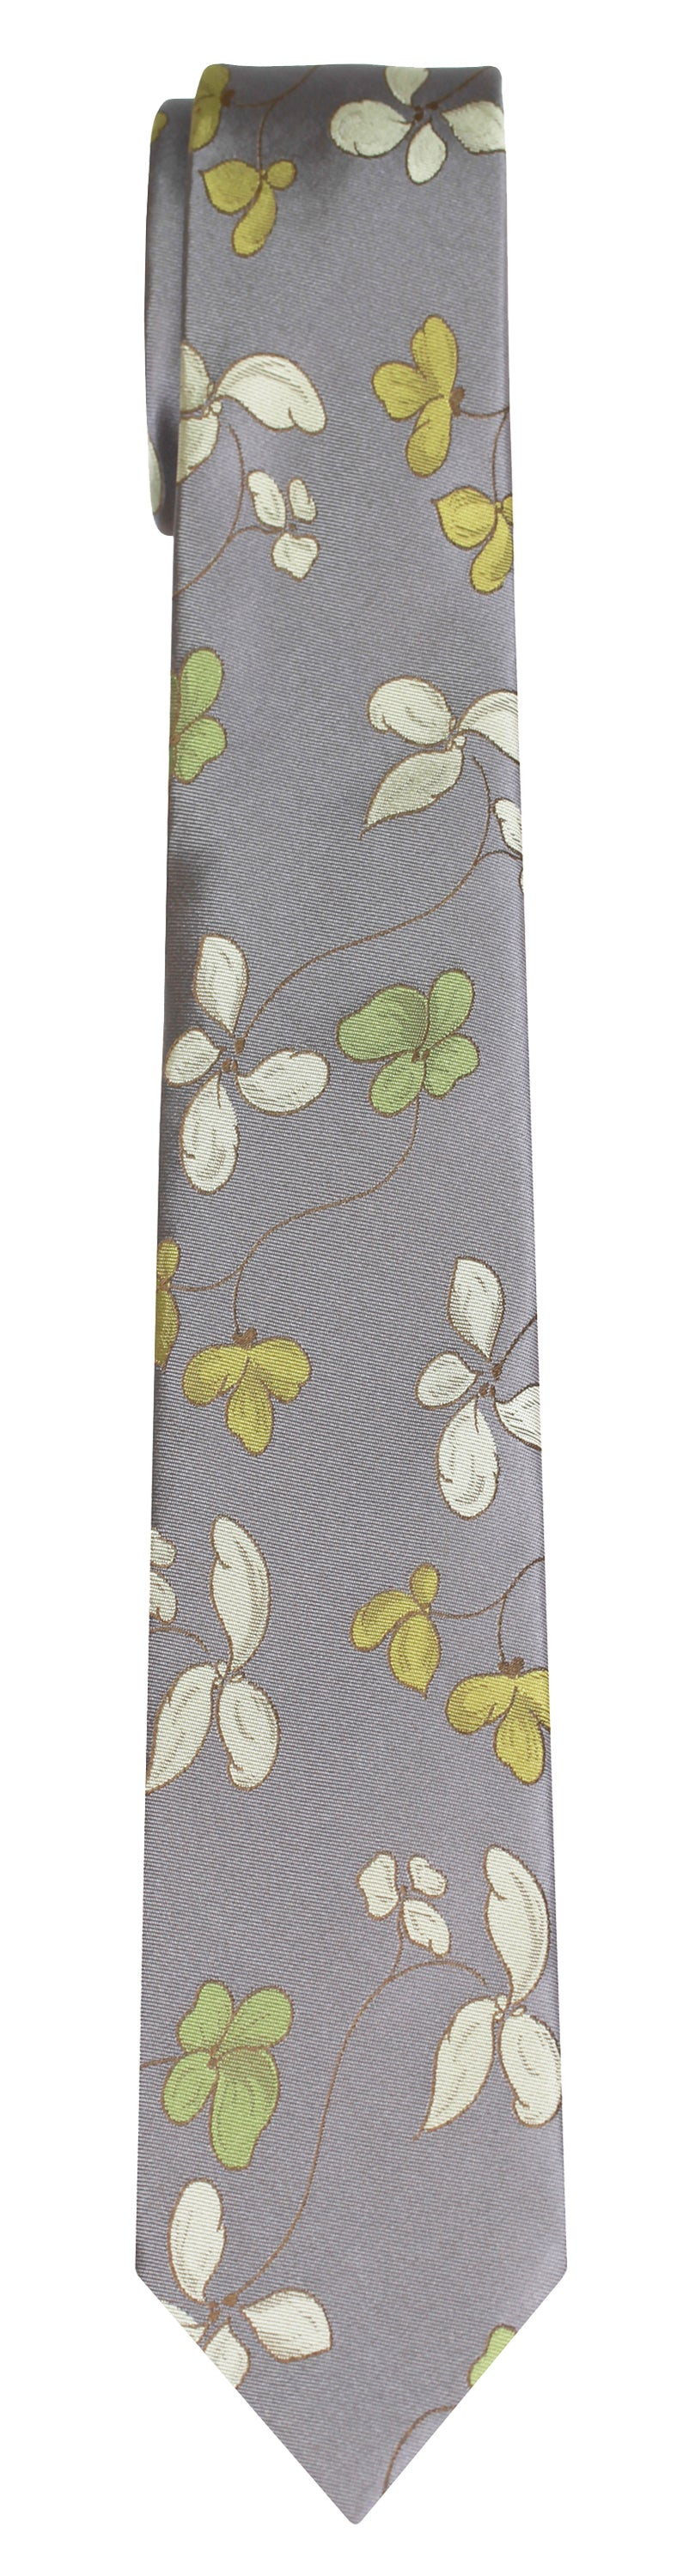 Mimi Fong Bloom Tie in Grey